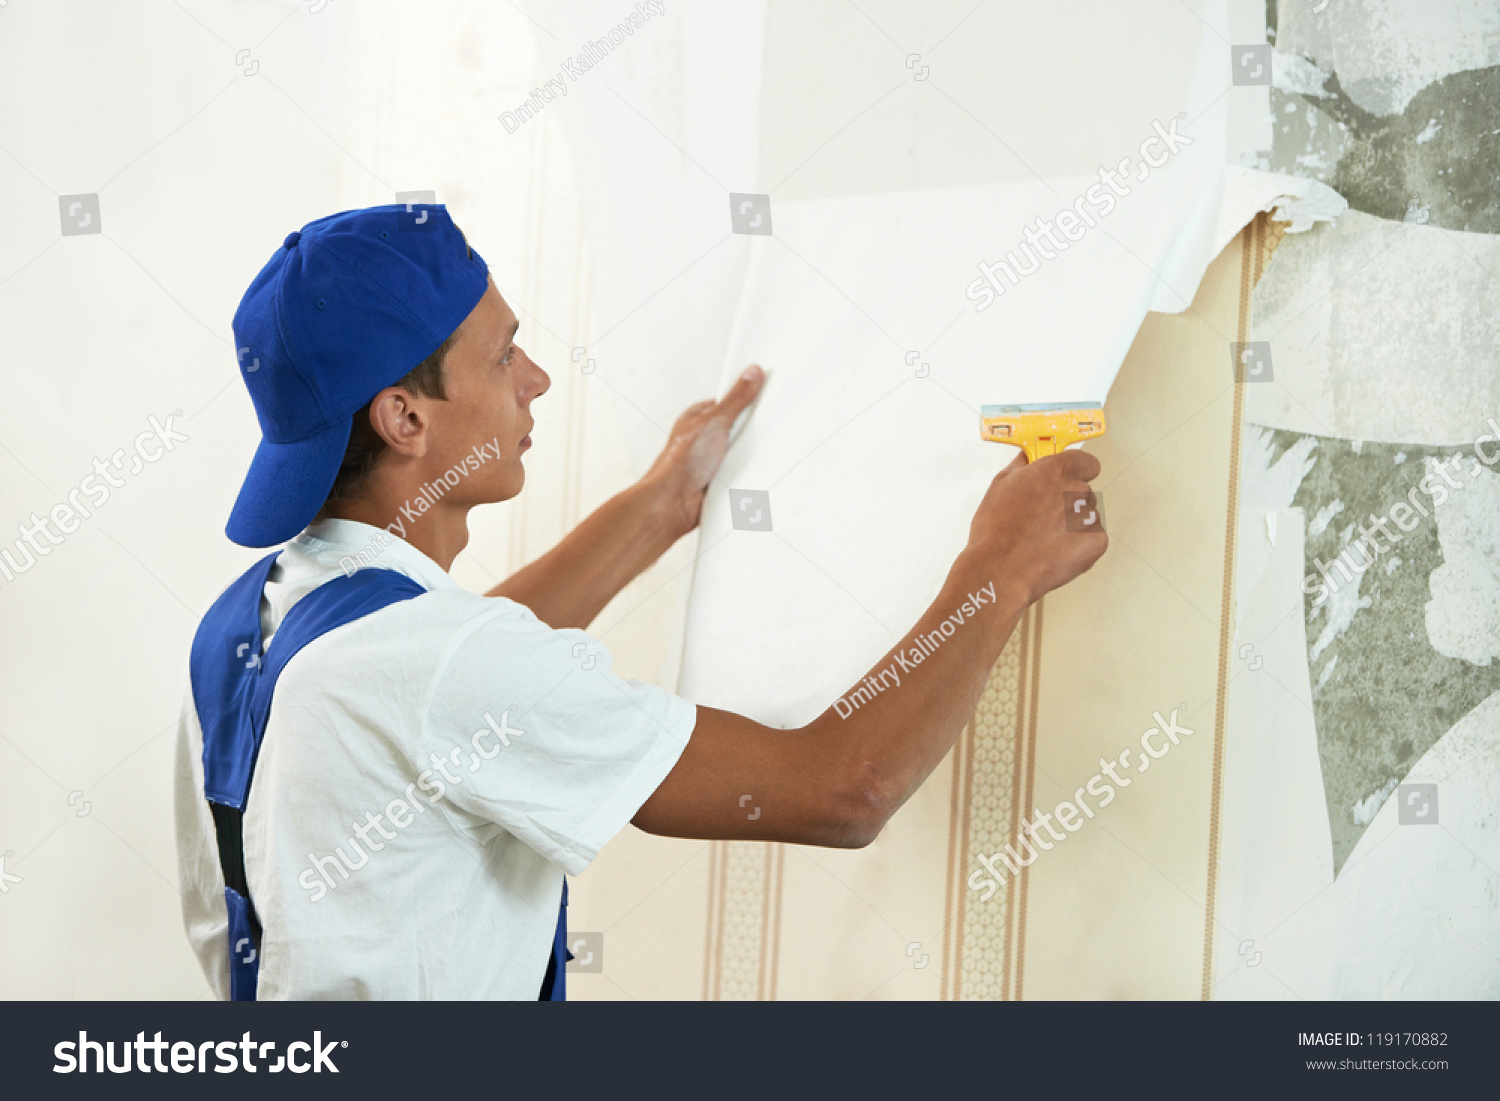 One painter worker peeling off wallpaper stock photo for Wallpaper home improvement questions